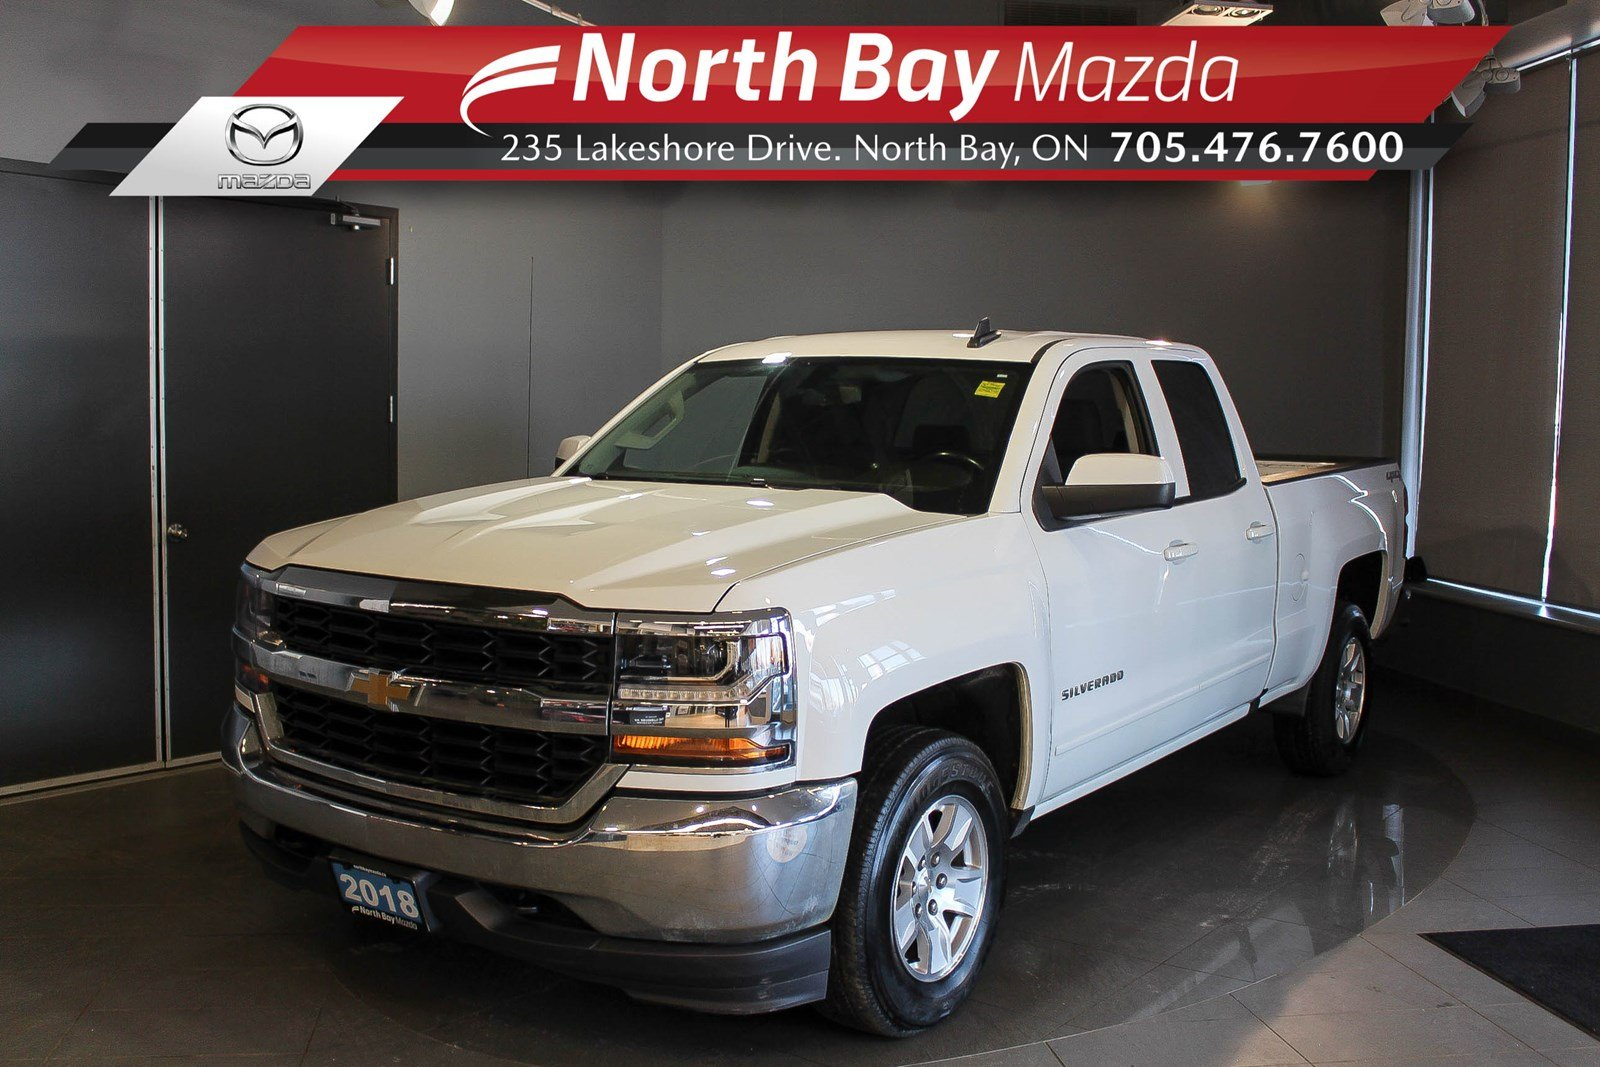 Pre-Owned 2018 Chevrolet Silverado 1500 LT - Test Drive Available by Appt!